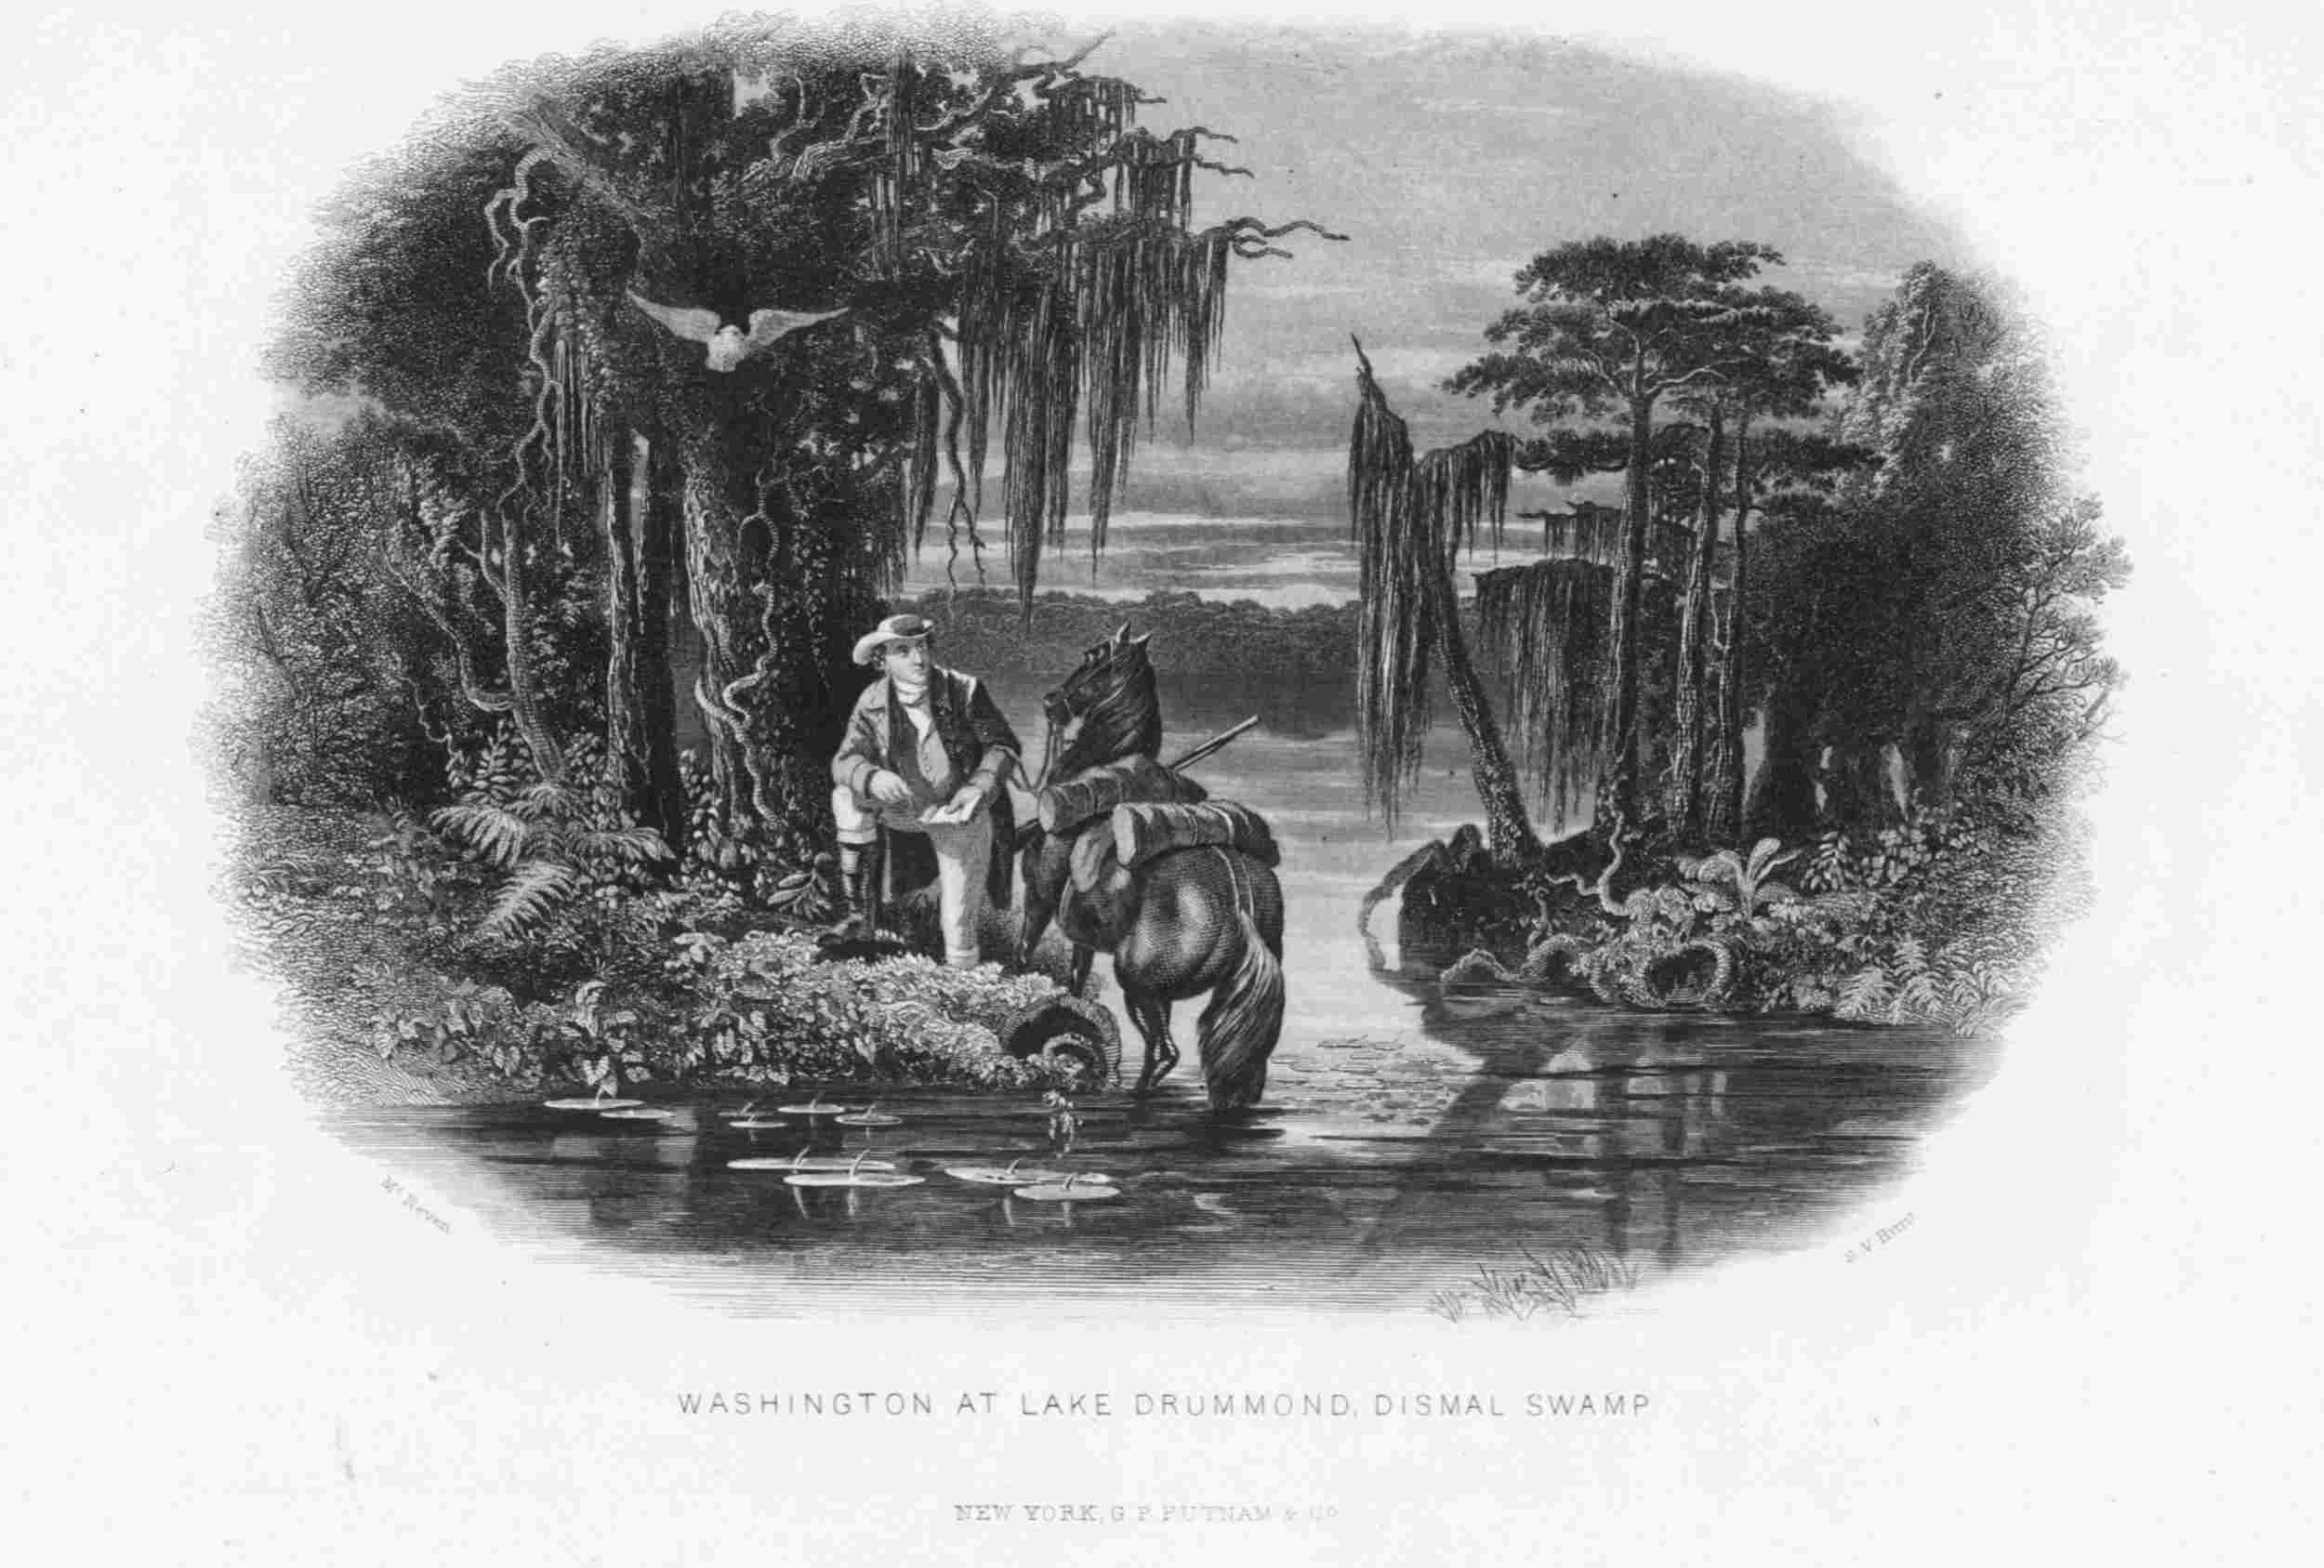 Engraving of George Washington's 1763 Survey of the Great Dismal Swamp